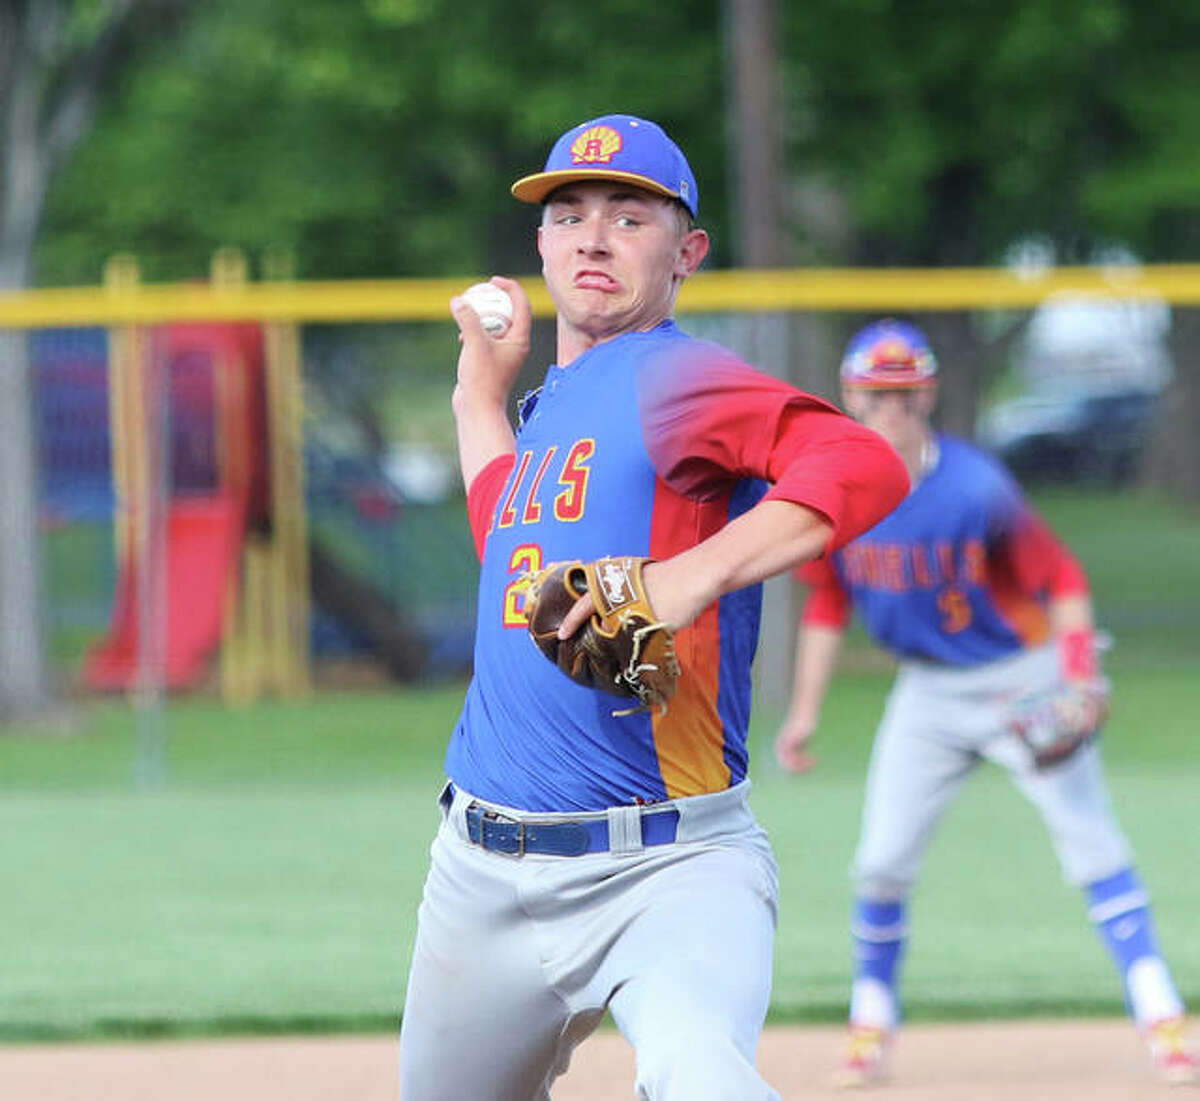 Roxana pitcher Gavin Huffman, shown in a game earlier this month in Roxana, was back on his home field Tuesday and struck out 12 in a shutout against Jersey at Roxana Park.